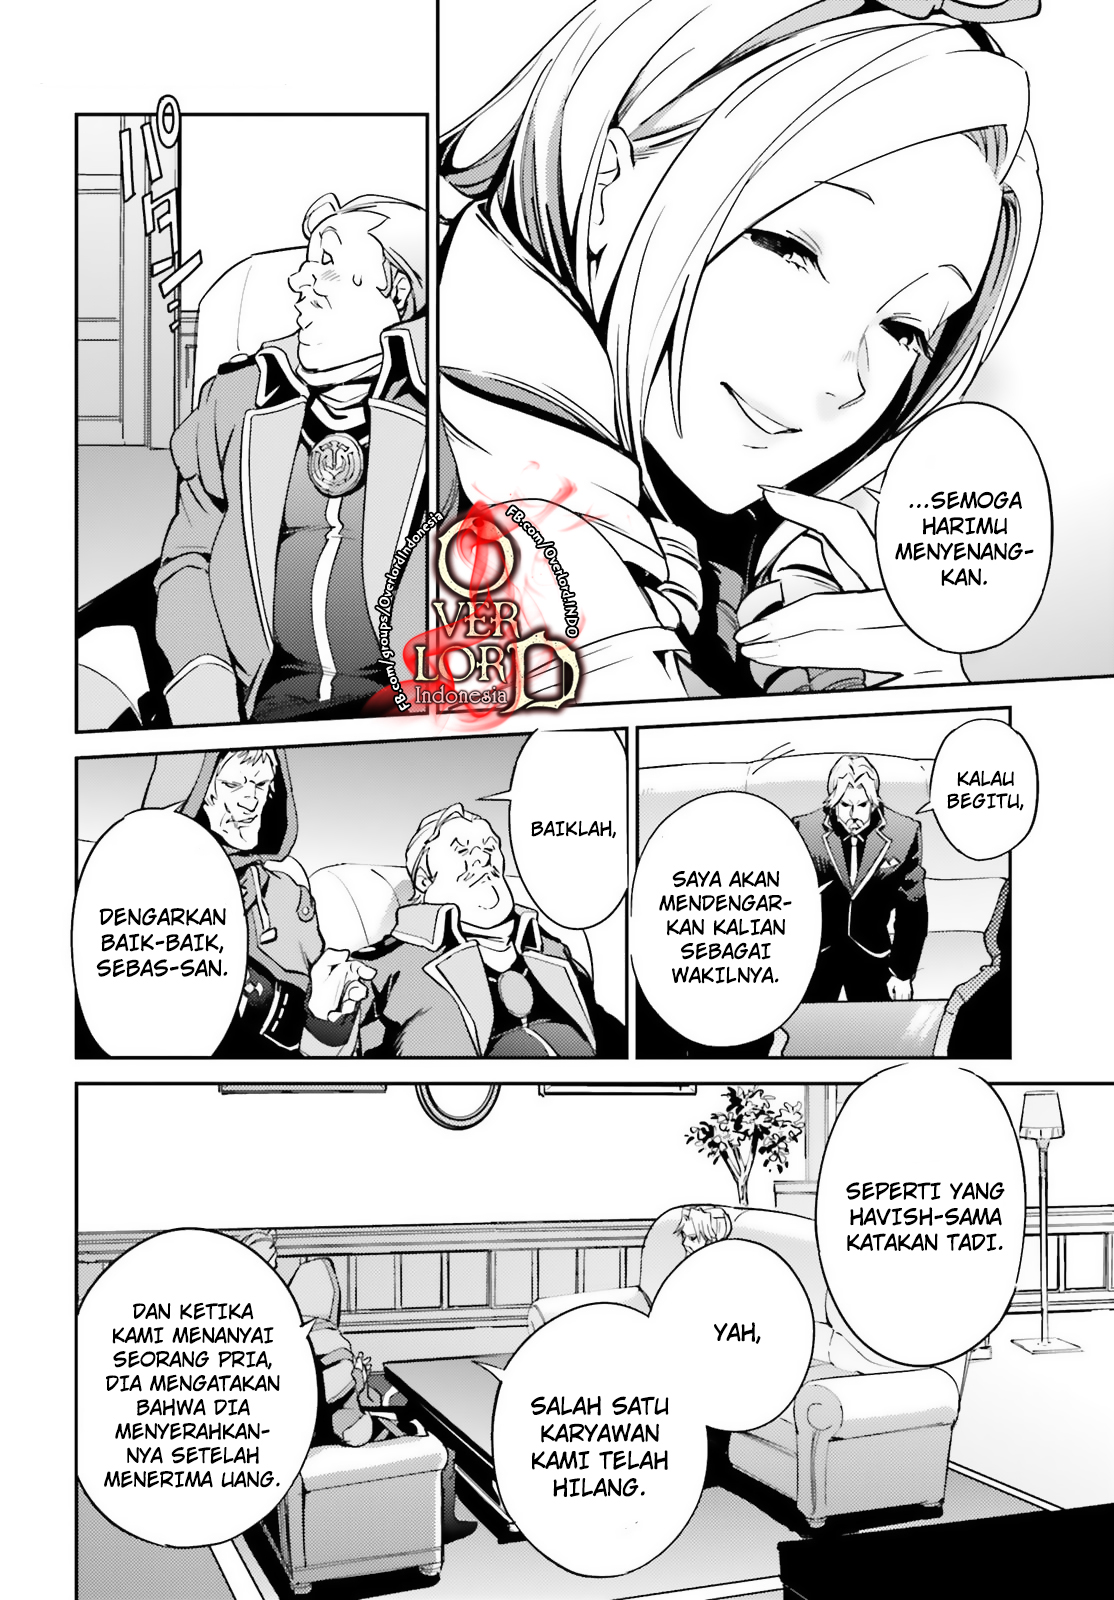 Overlord chapter 34 Bahasa Indonesia